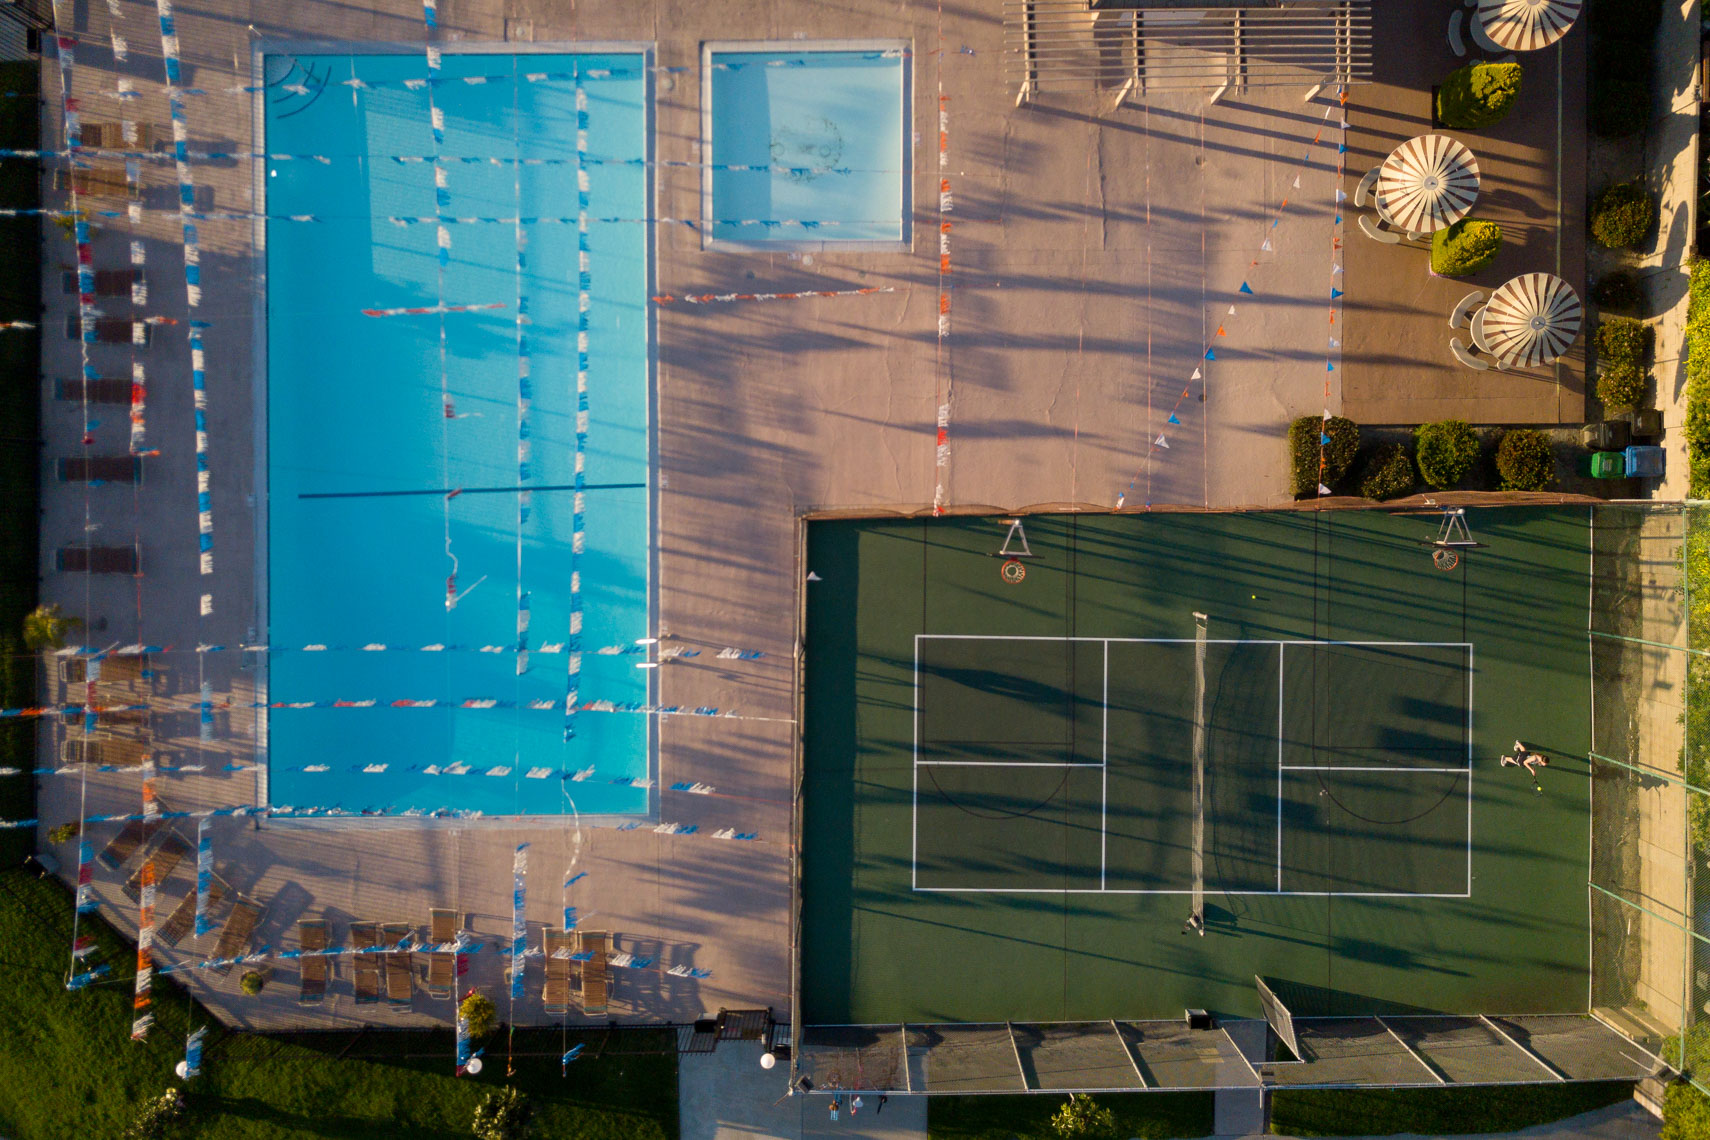 Tennis player aerial